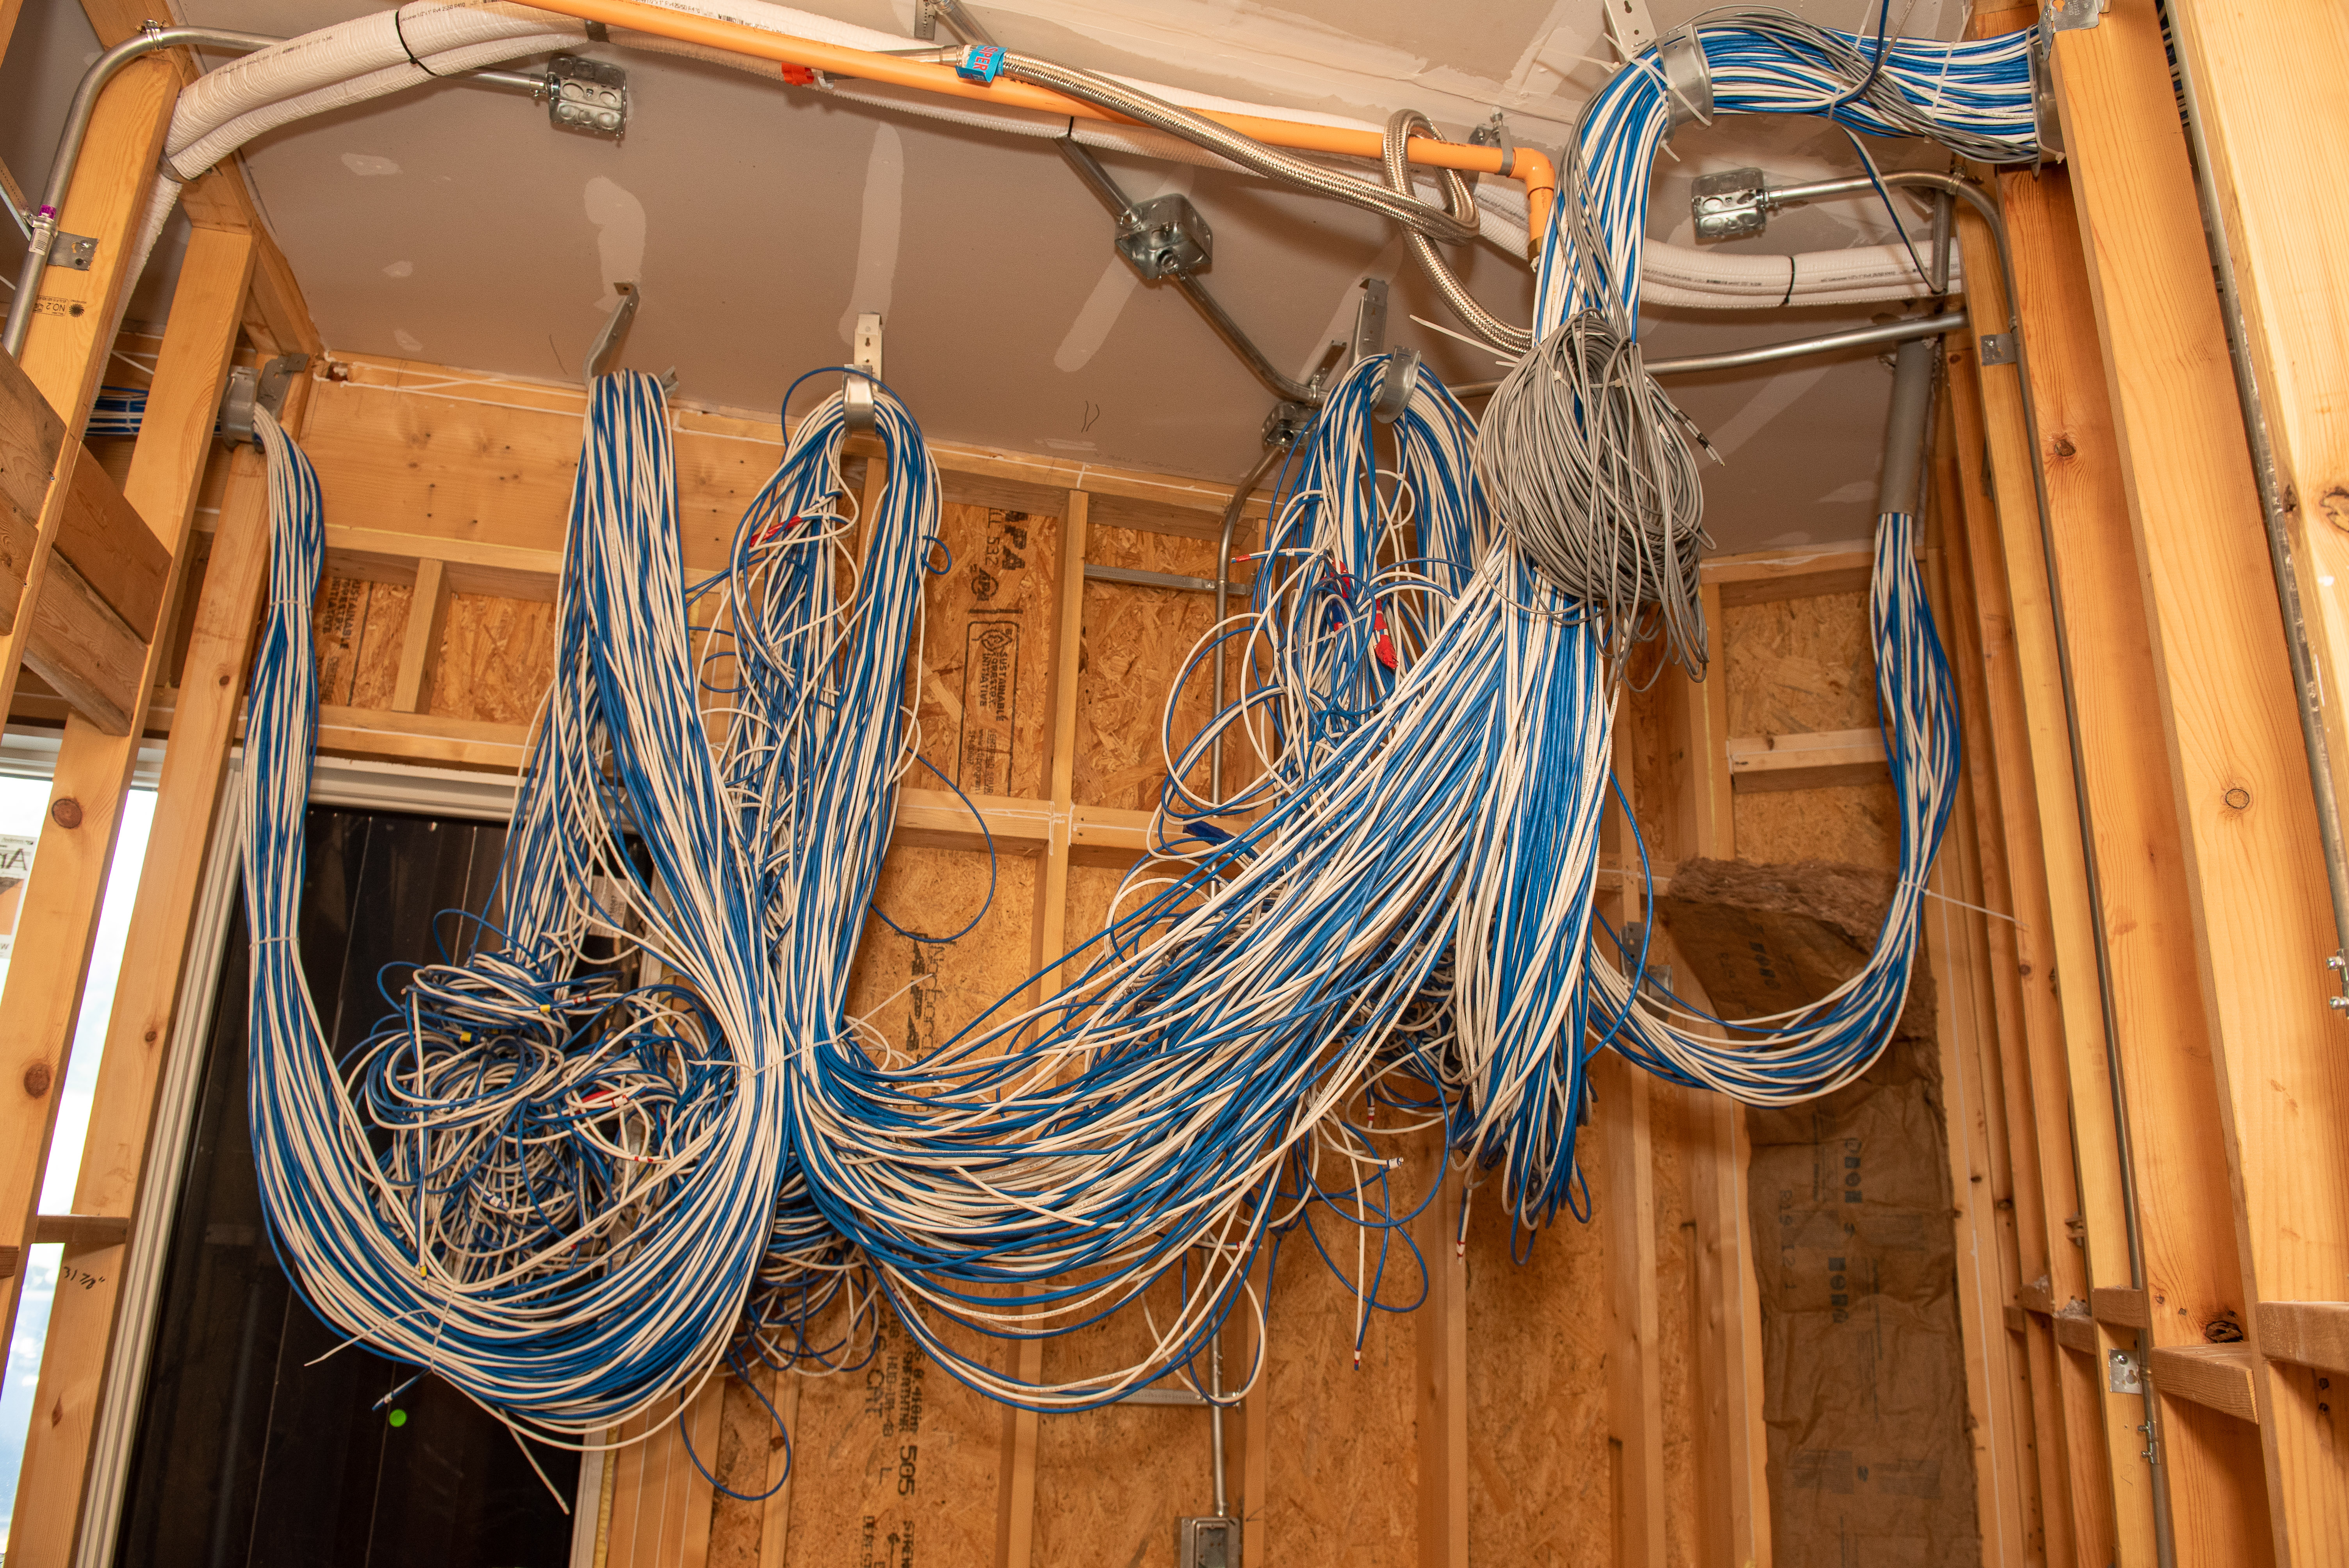 photograph of building construction with thick bundles of computer wiring.